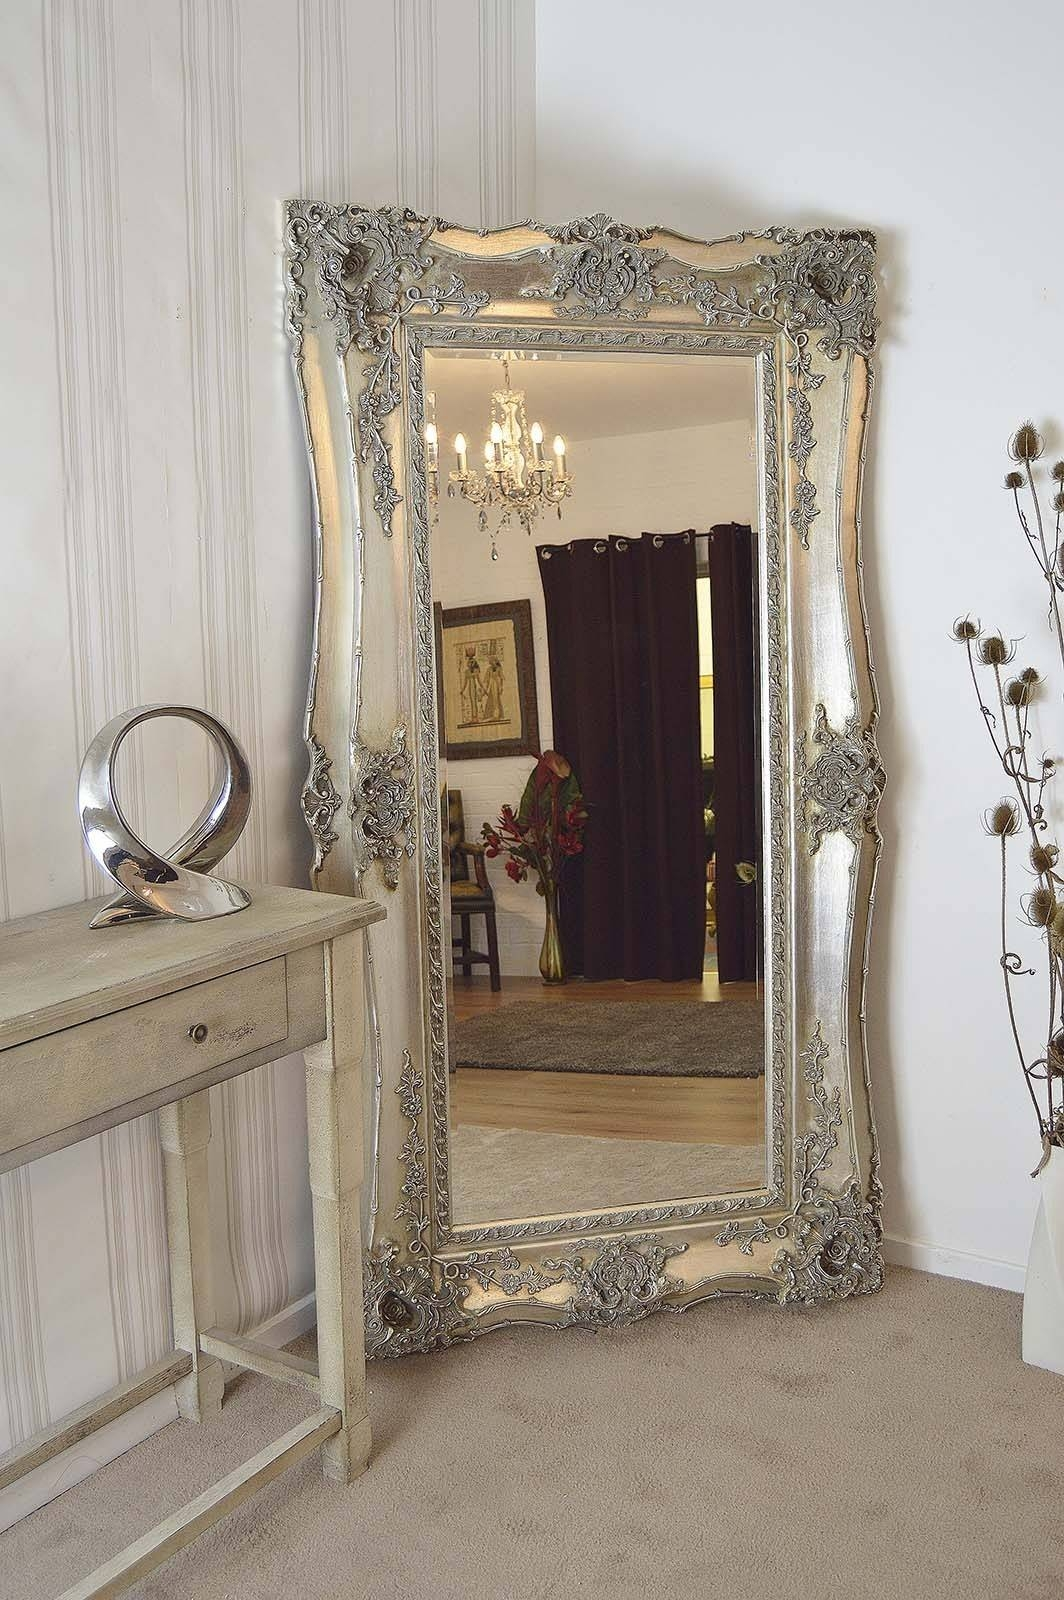 Homeware: Oval Full Length Standing Mirror | Large Floor Mirrors Intended For Huge Cheap Mirrors (View 19 of 25)